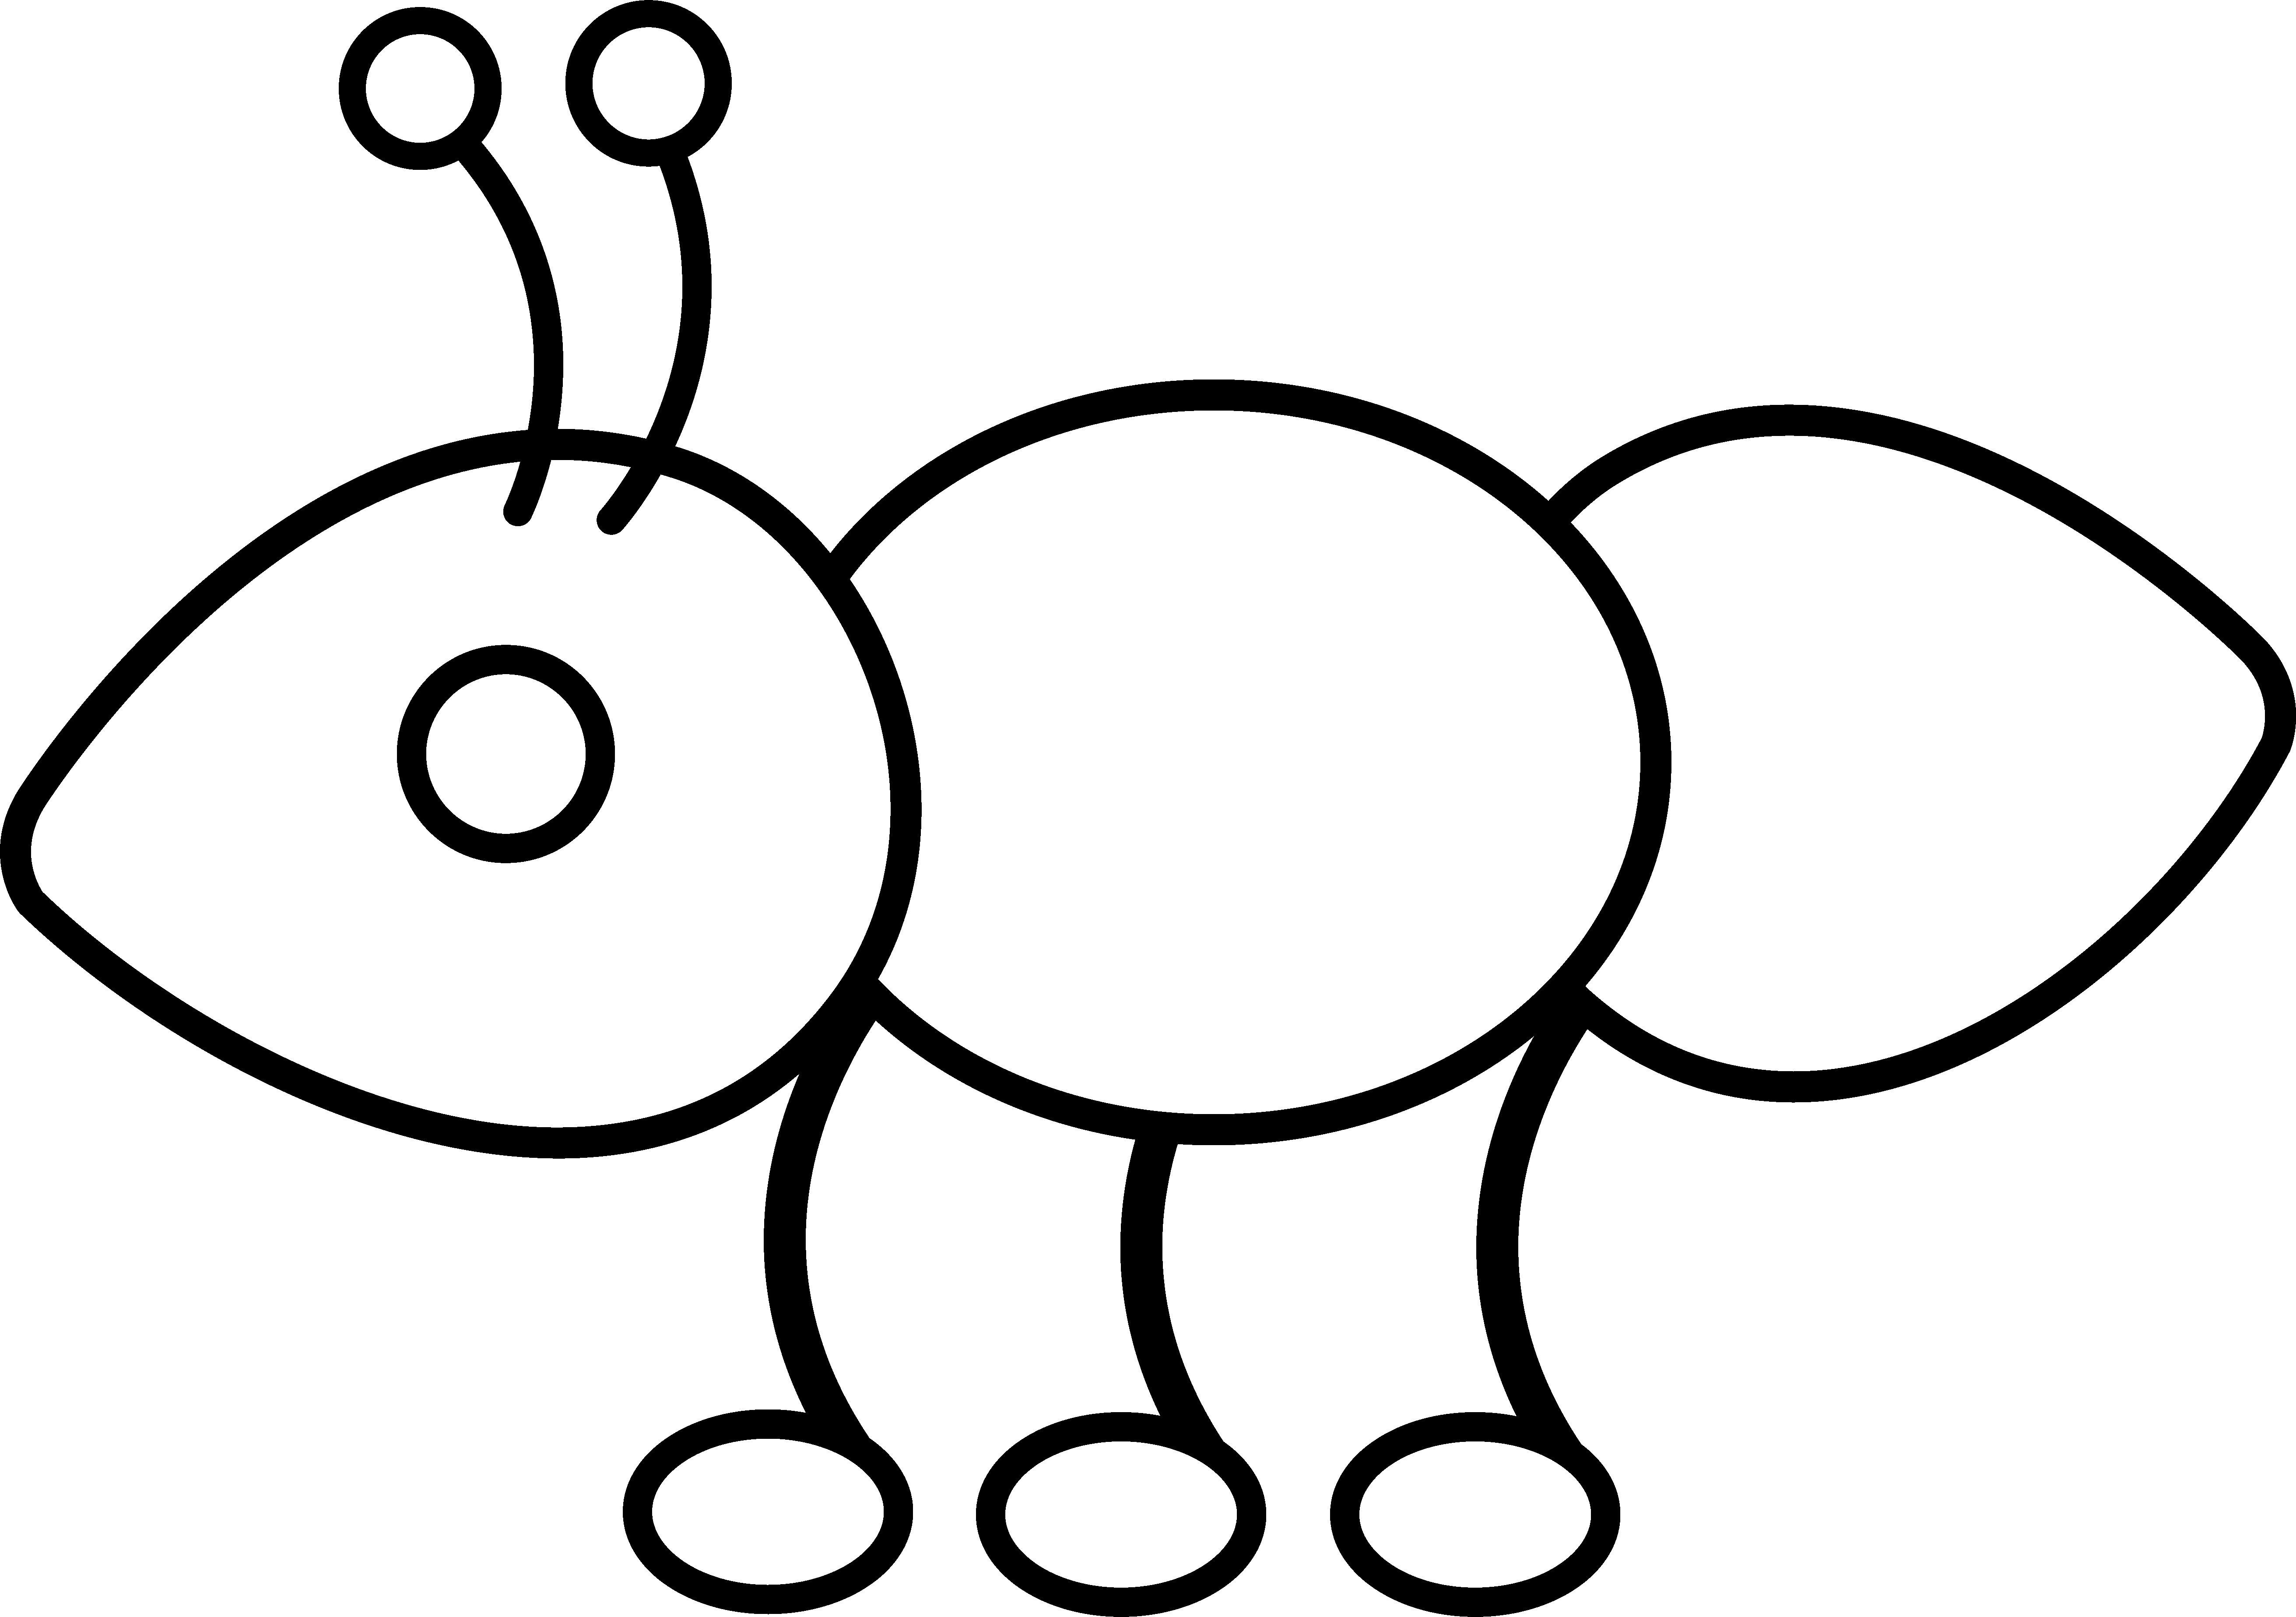 Ants clipart colouring page. New ant coloring collection